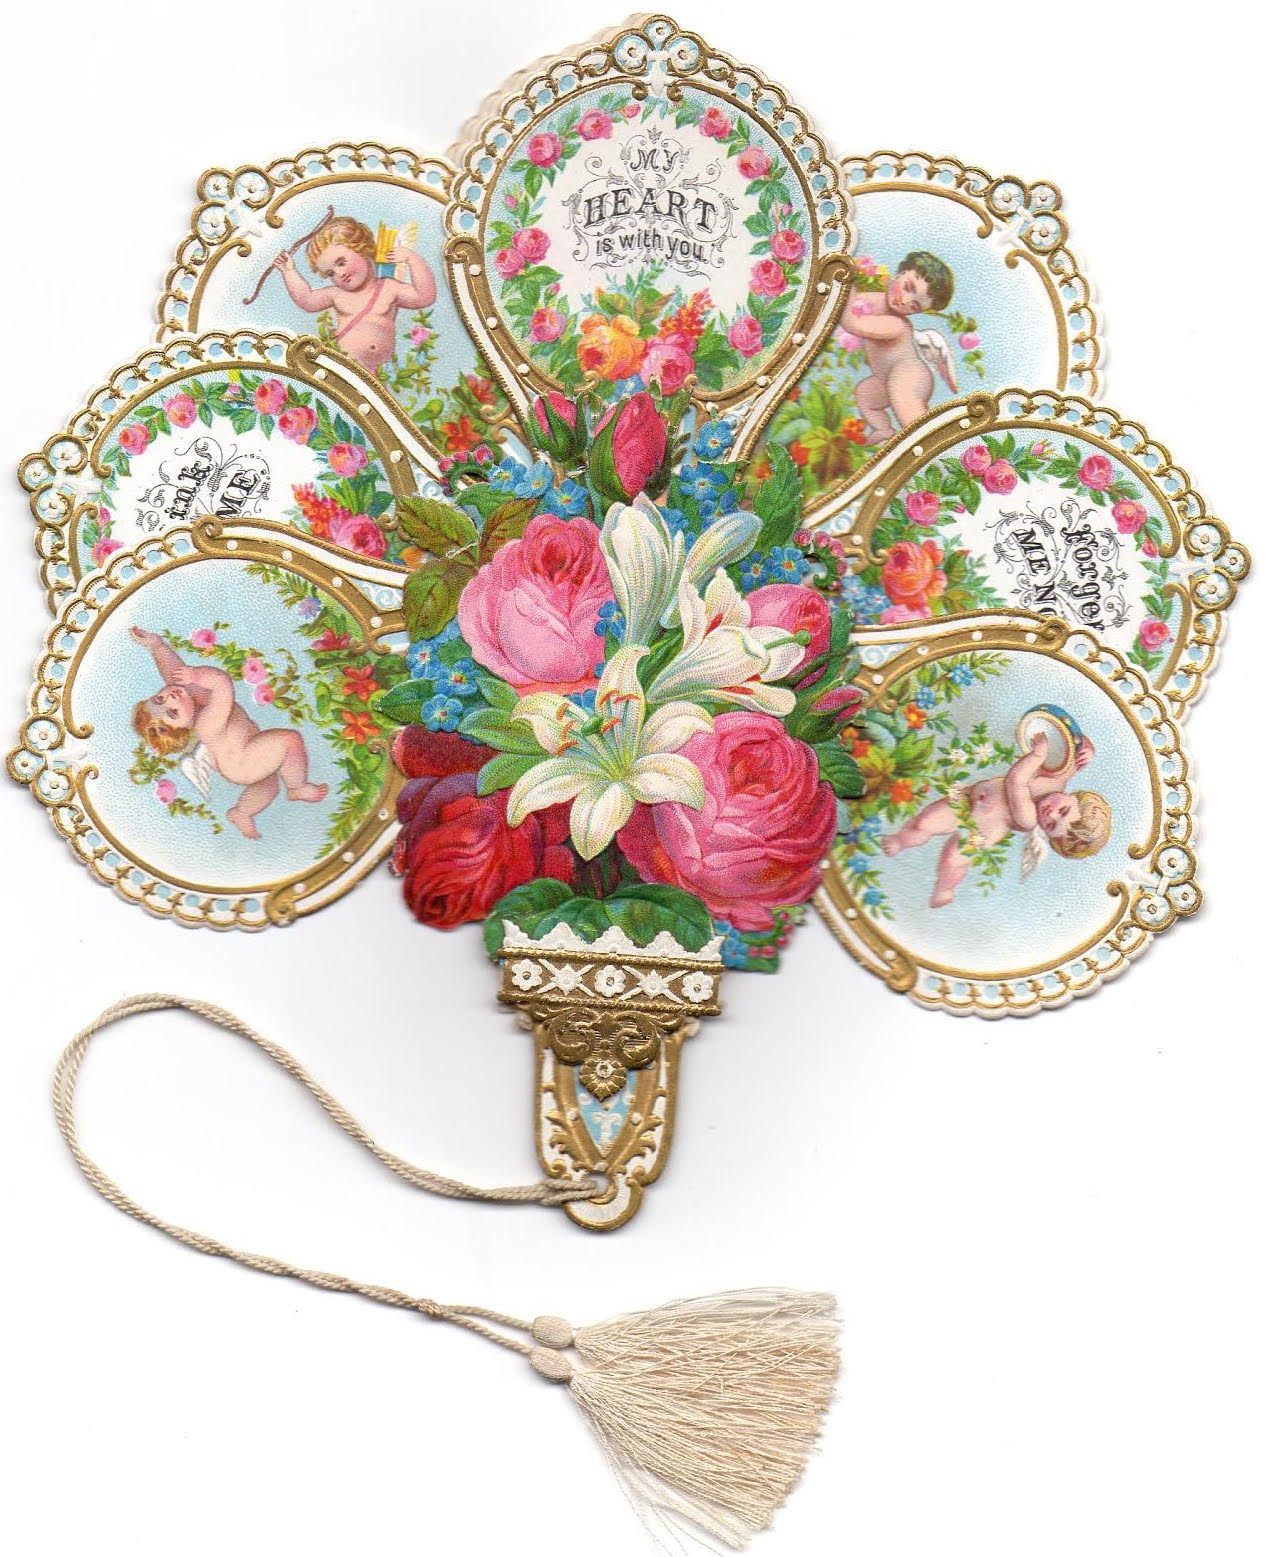 This 1860s scented Eugene Rimmel Valentine, lithographed with images of flowers and Cupid, folds out into a hand fan. A cord with tassels is attached to the bottom. (Courtesy of Nancy Rosin)